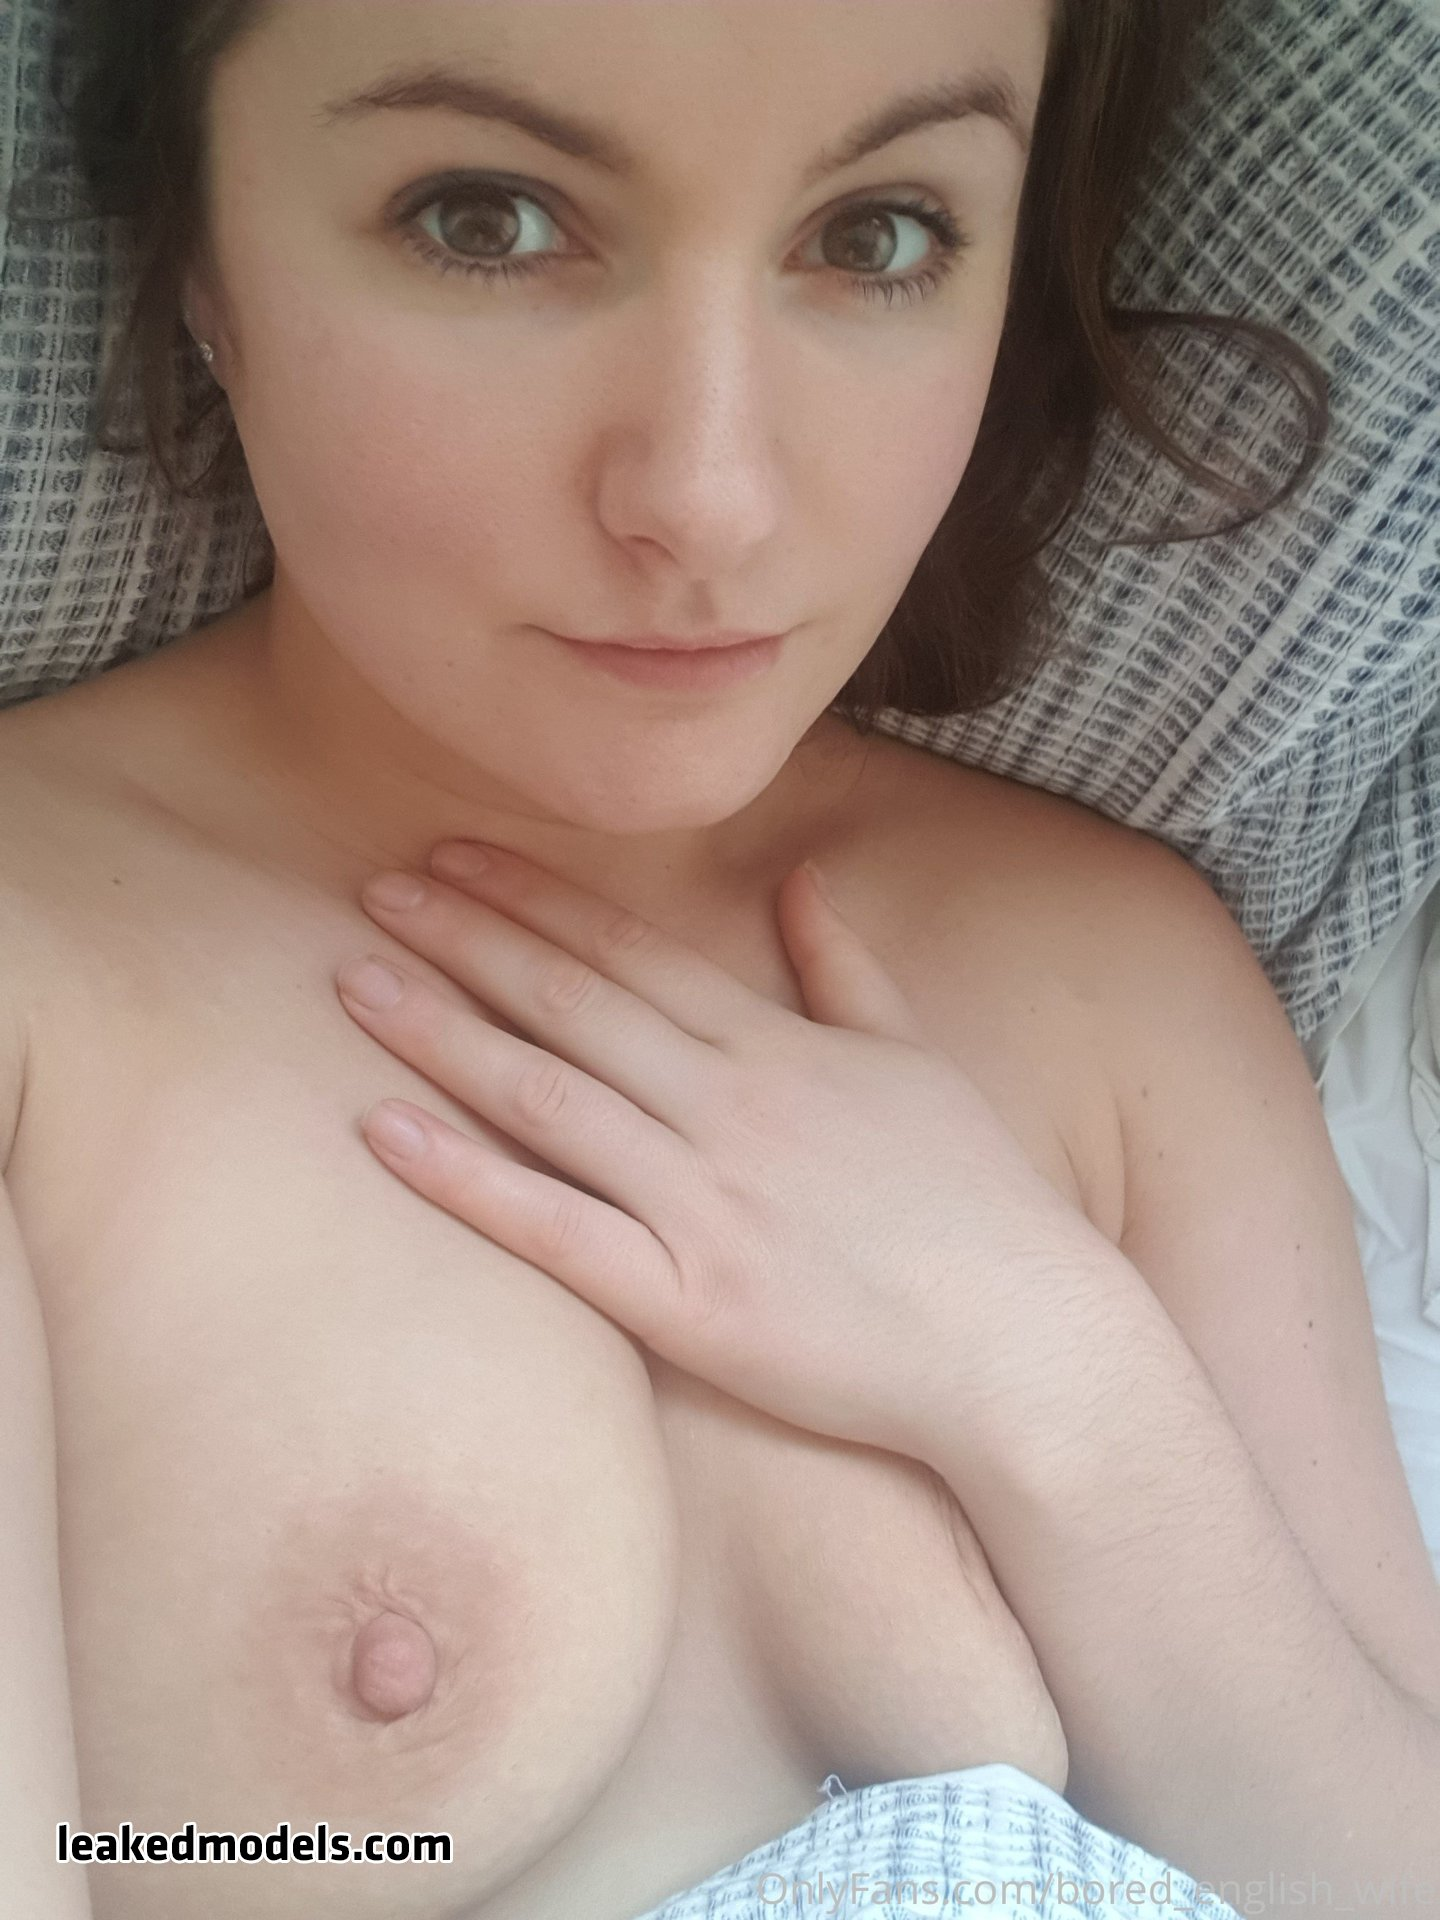 bored_english_wife OnlyFans Nude Leaks (32 Photos)